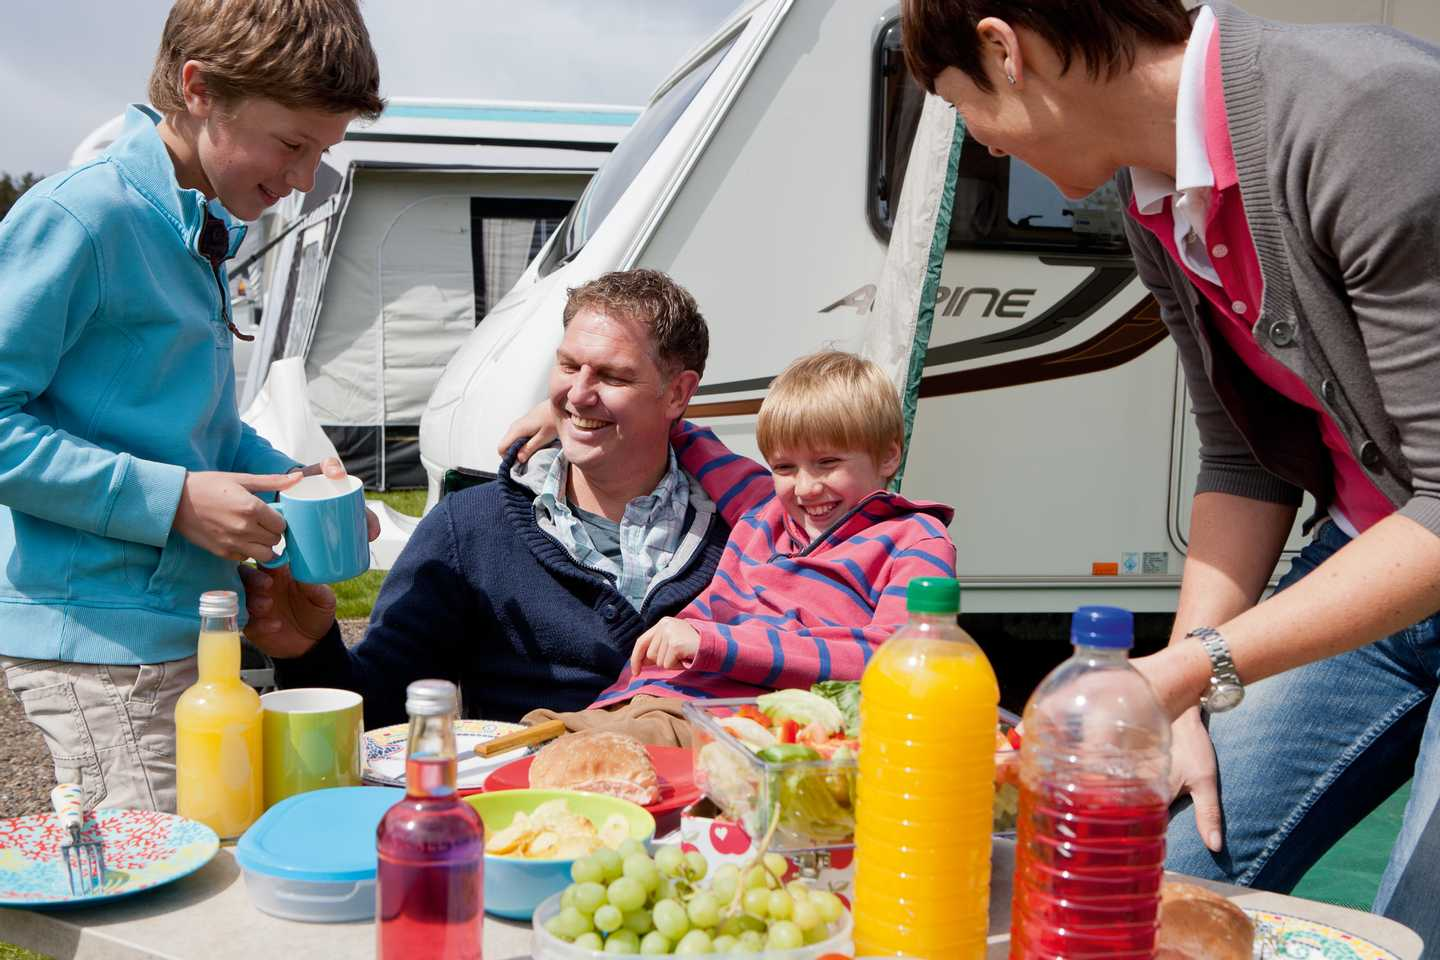 A family enjoying a picnic outside their caravan